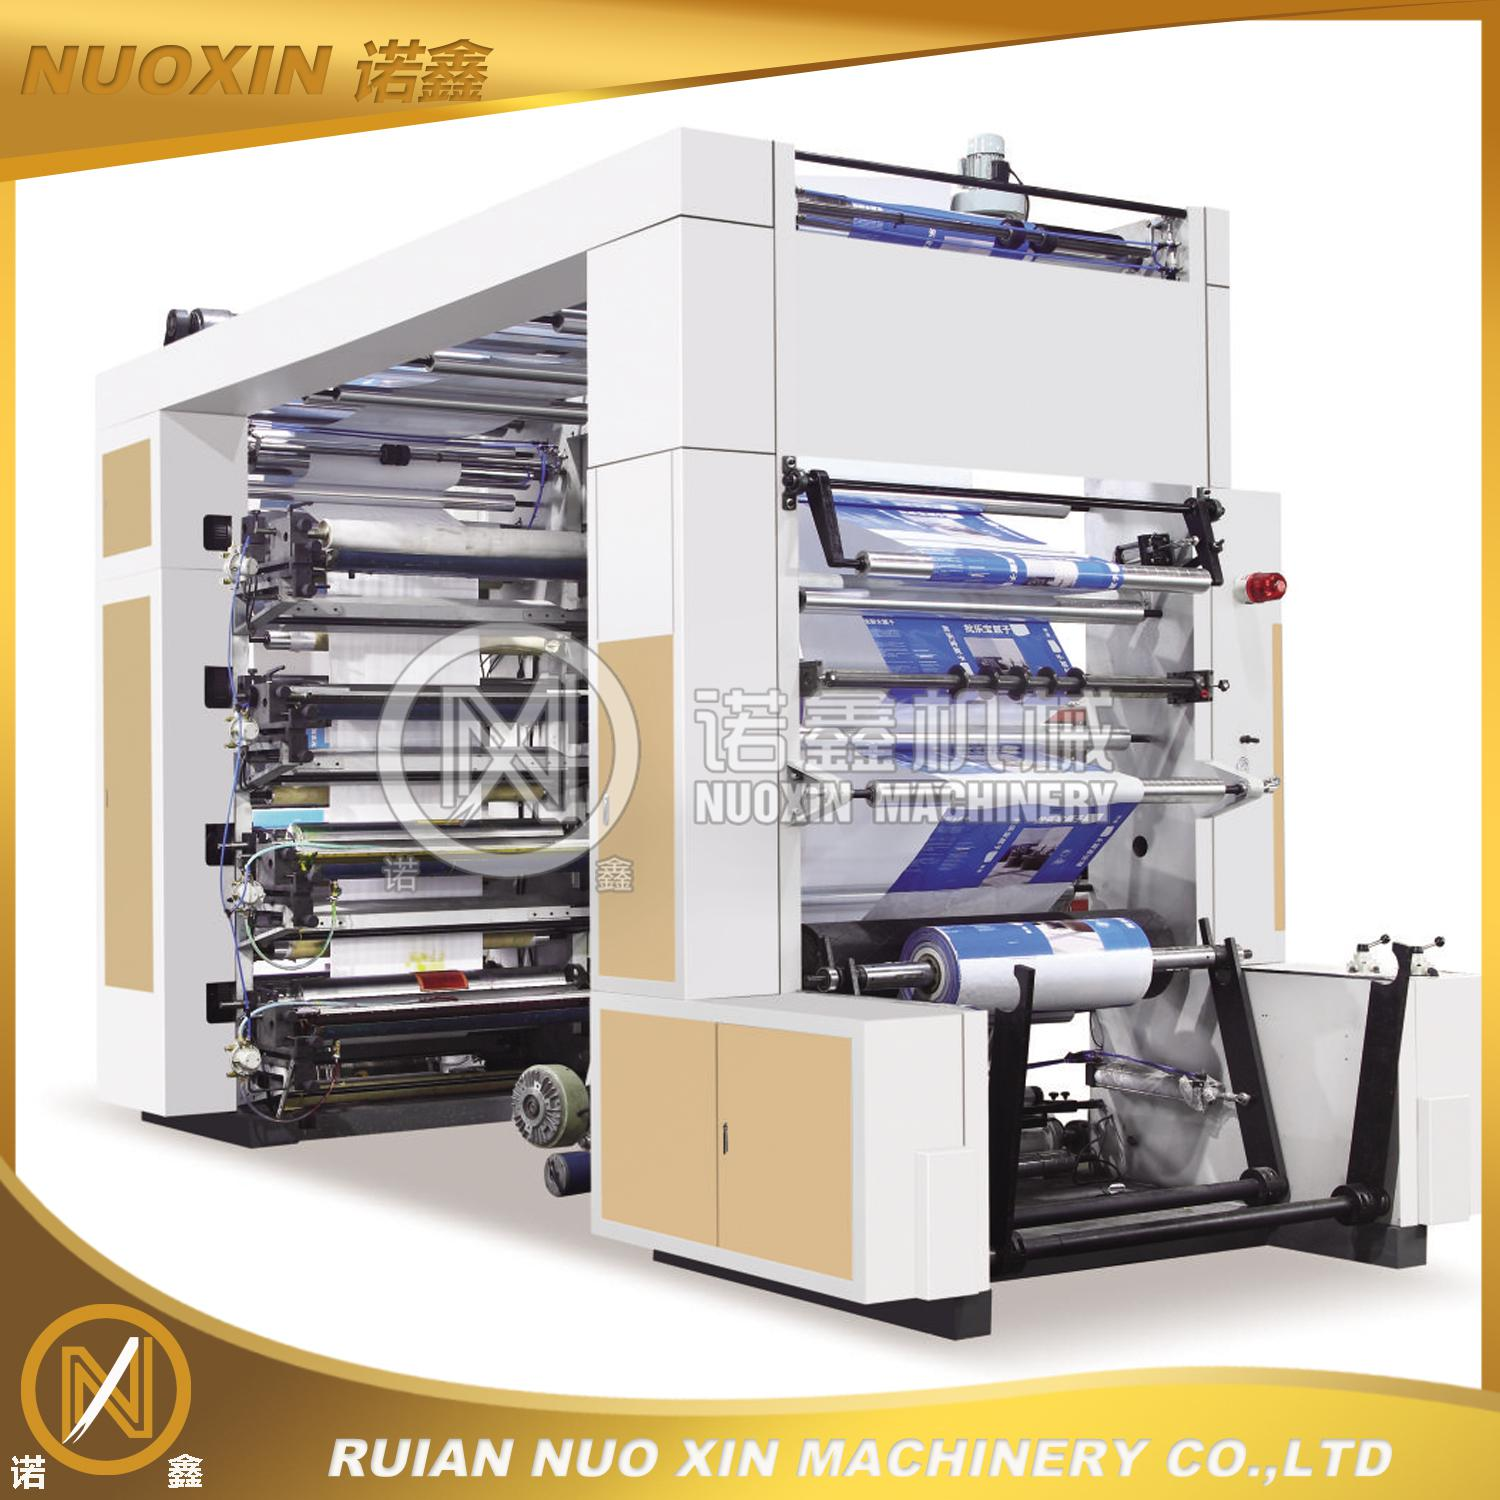 NX-81000 8 color Flexographic Printing Machinery